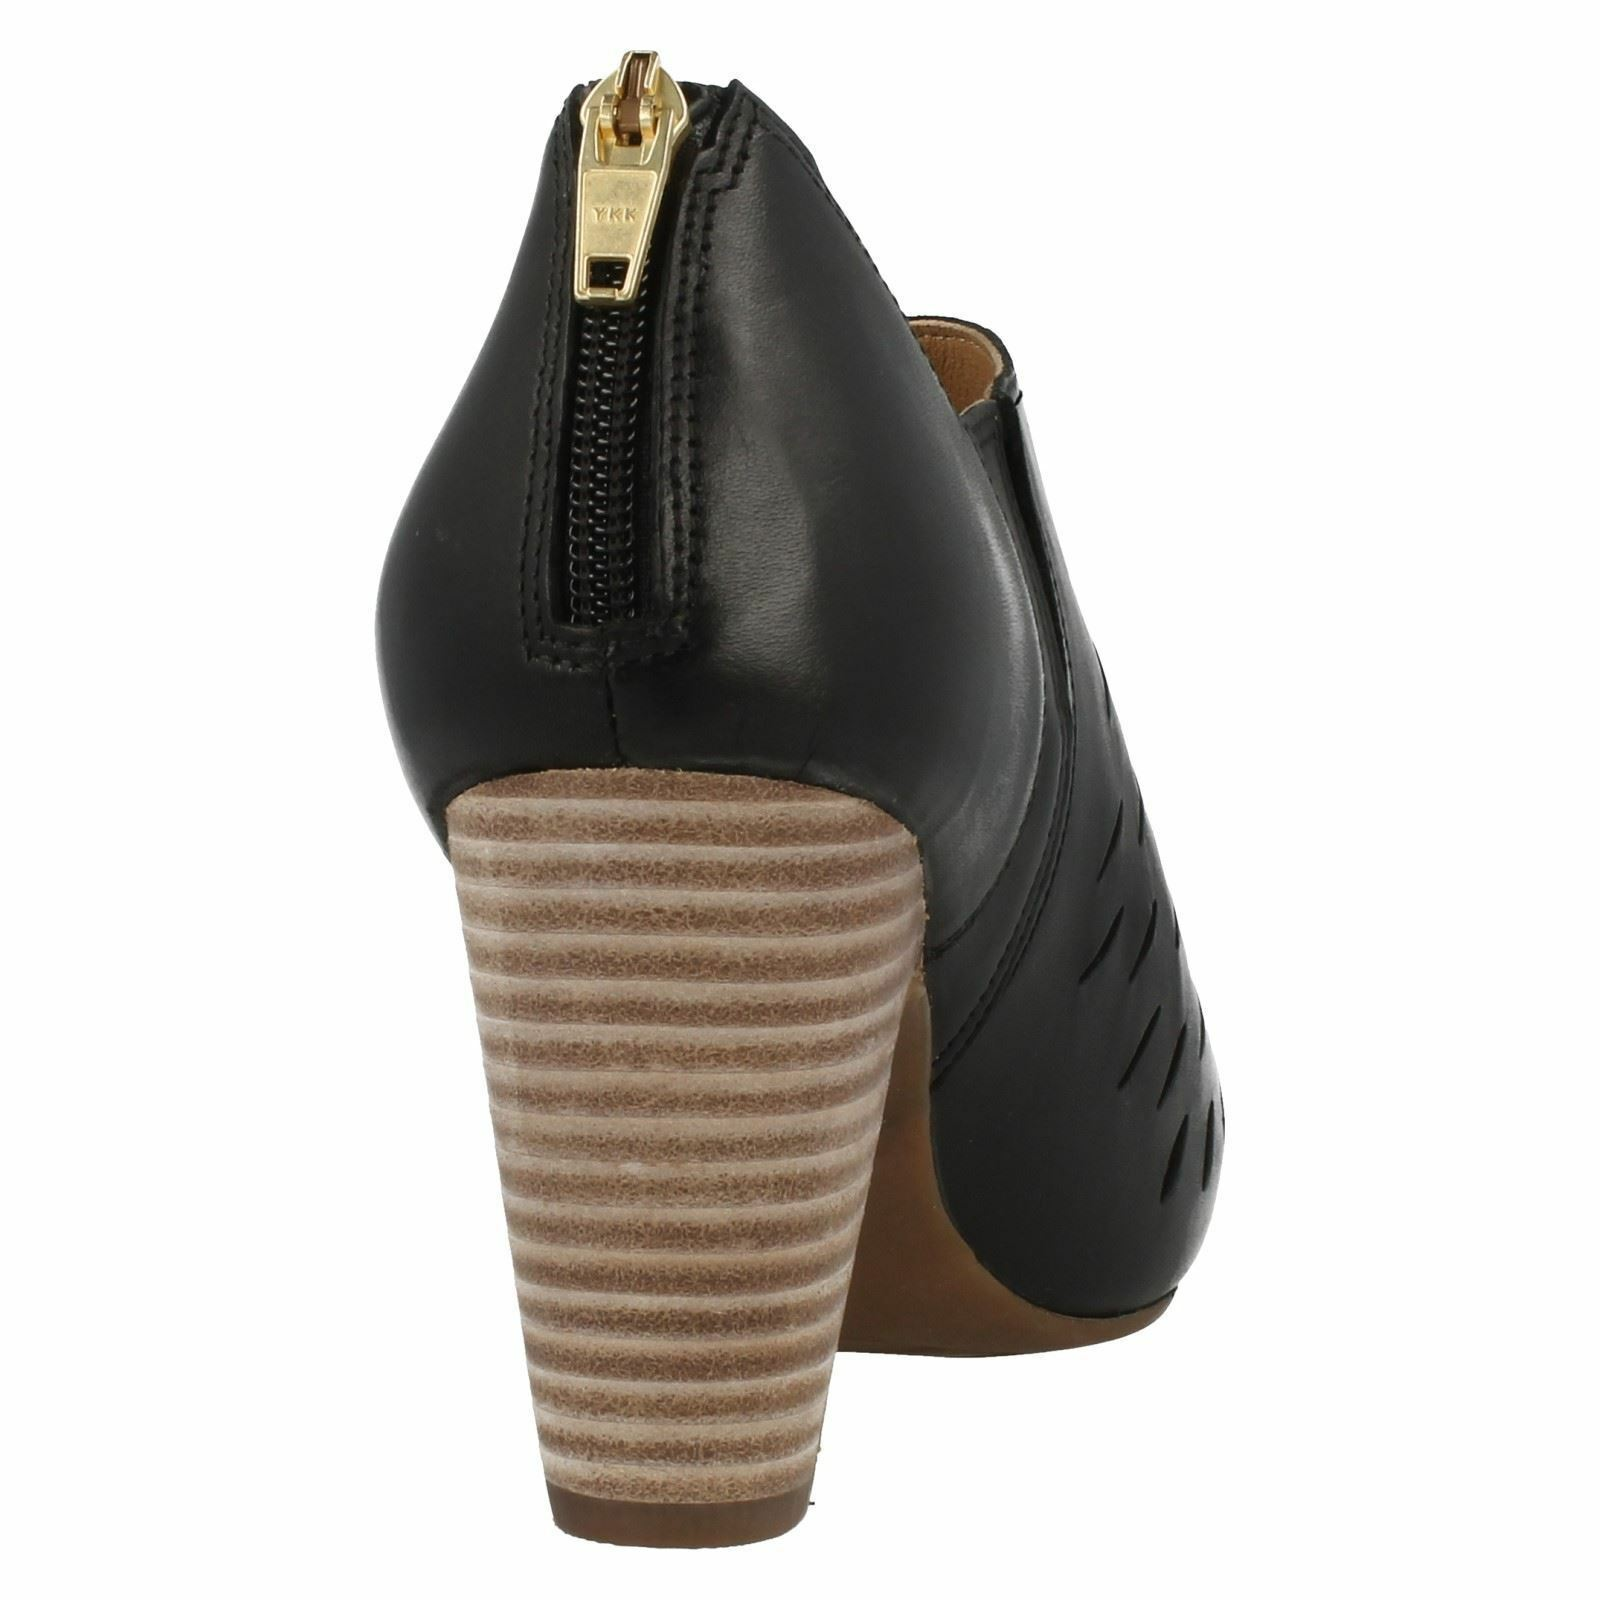 LADIES CLARKS CLARKS CLARKS LEATHER CUT OUT PEEP TOE SMART FORMAL COURT SHOES SIZE OKENA POSH a41e01